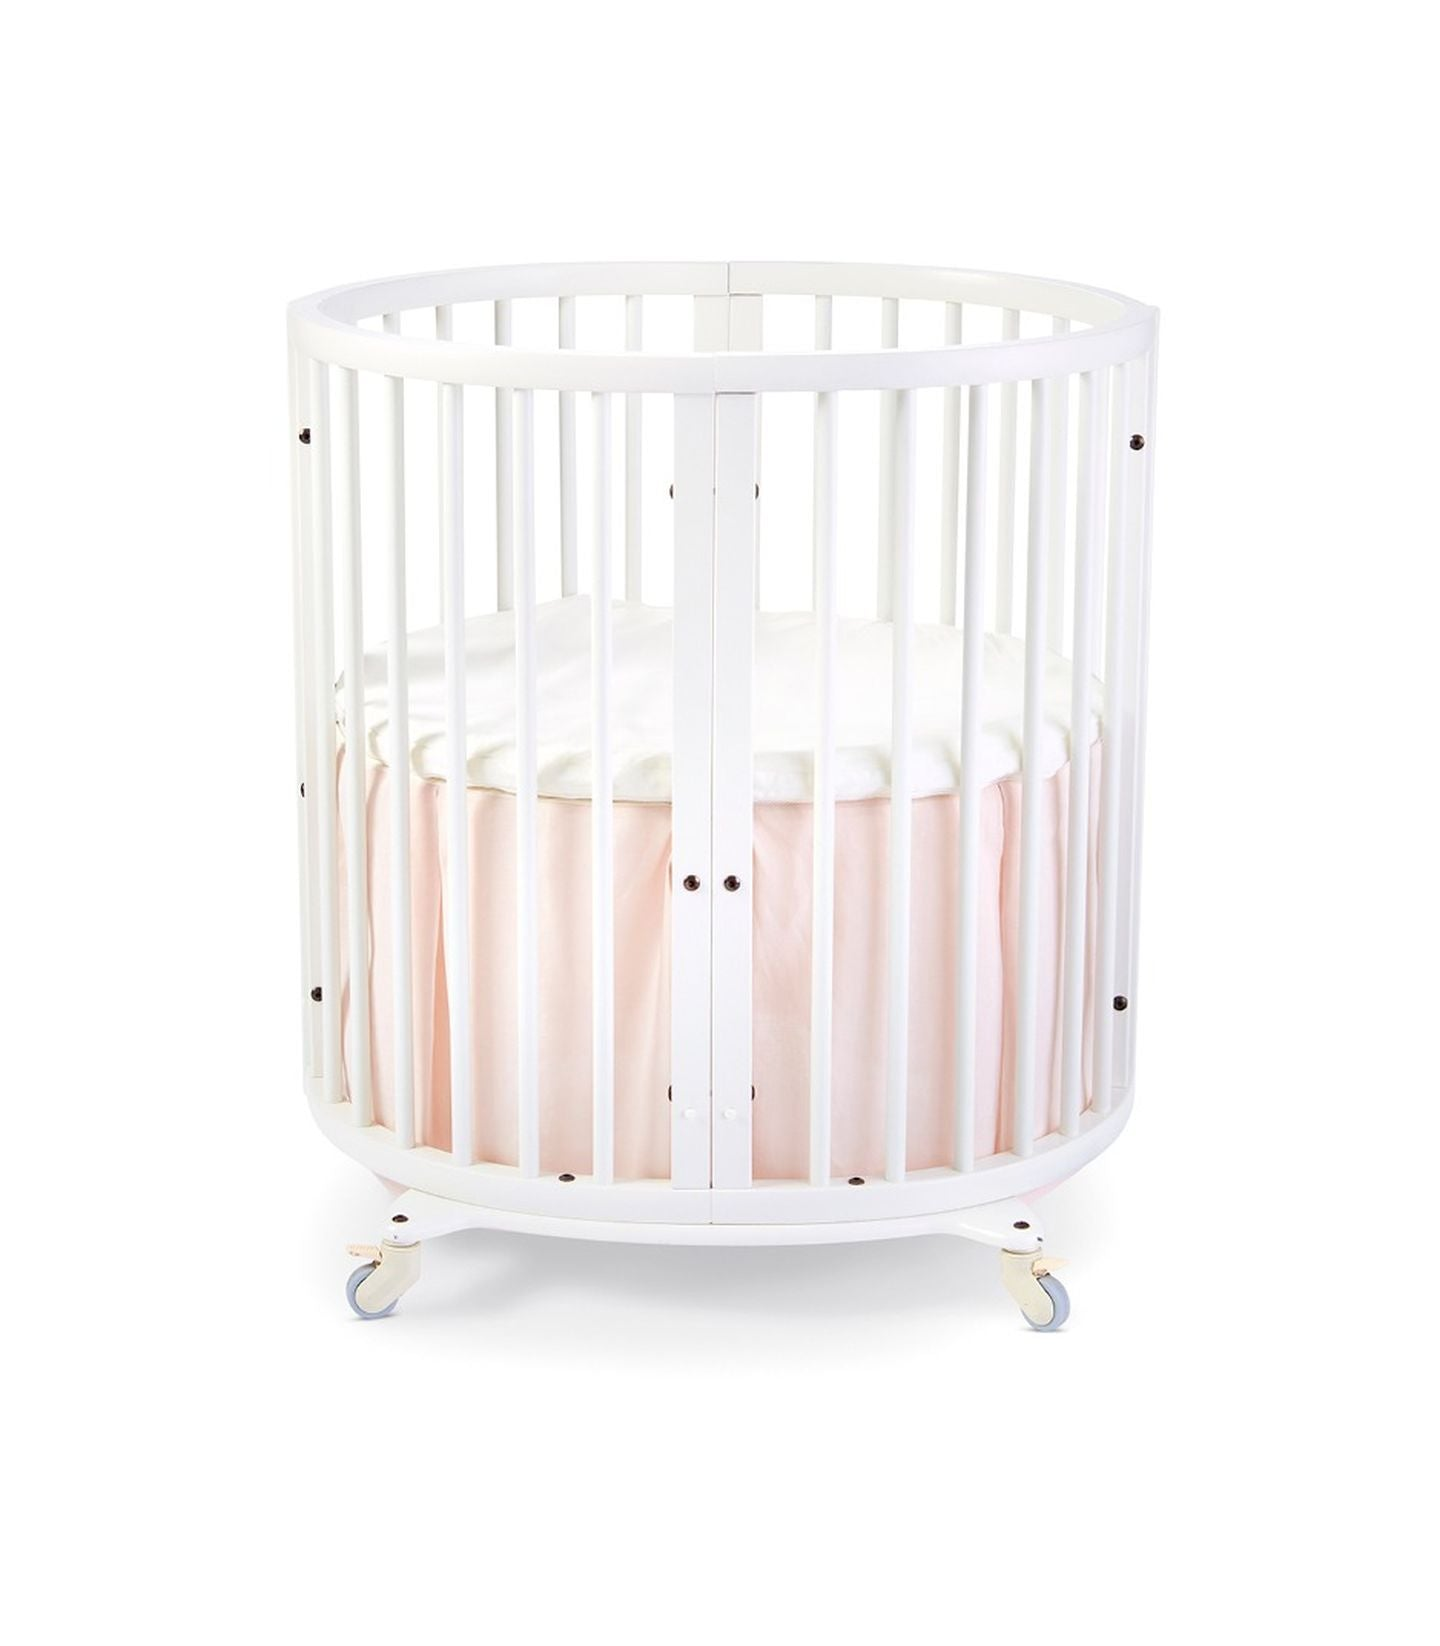 Stokke Sleepi Mini Fitted Bed Skirts